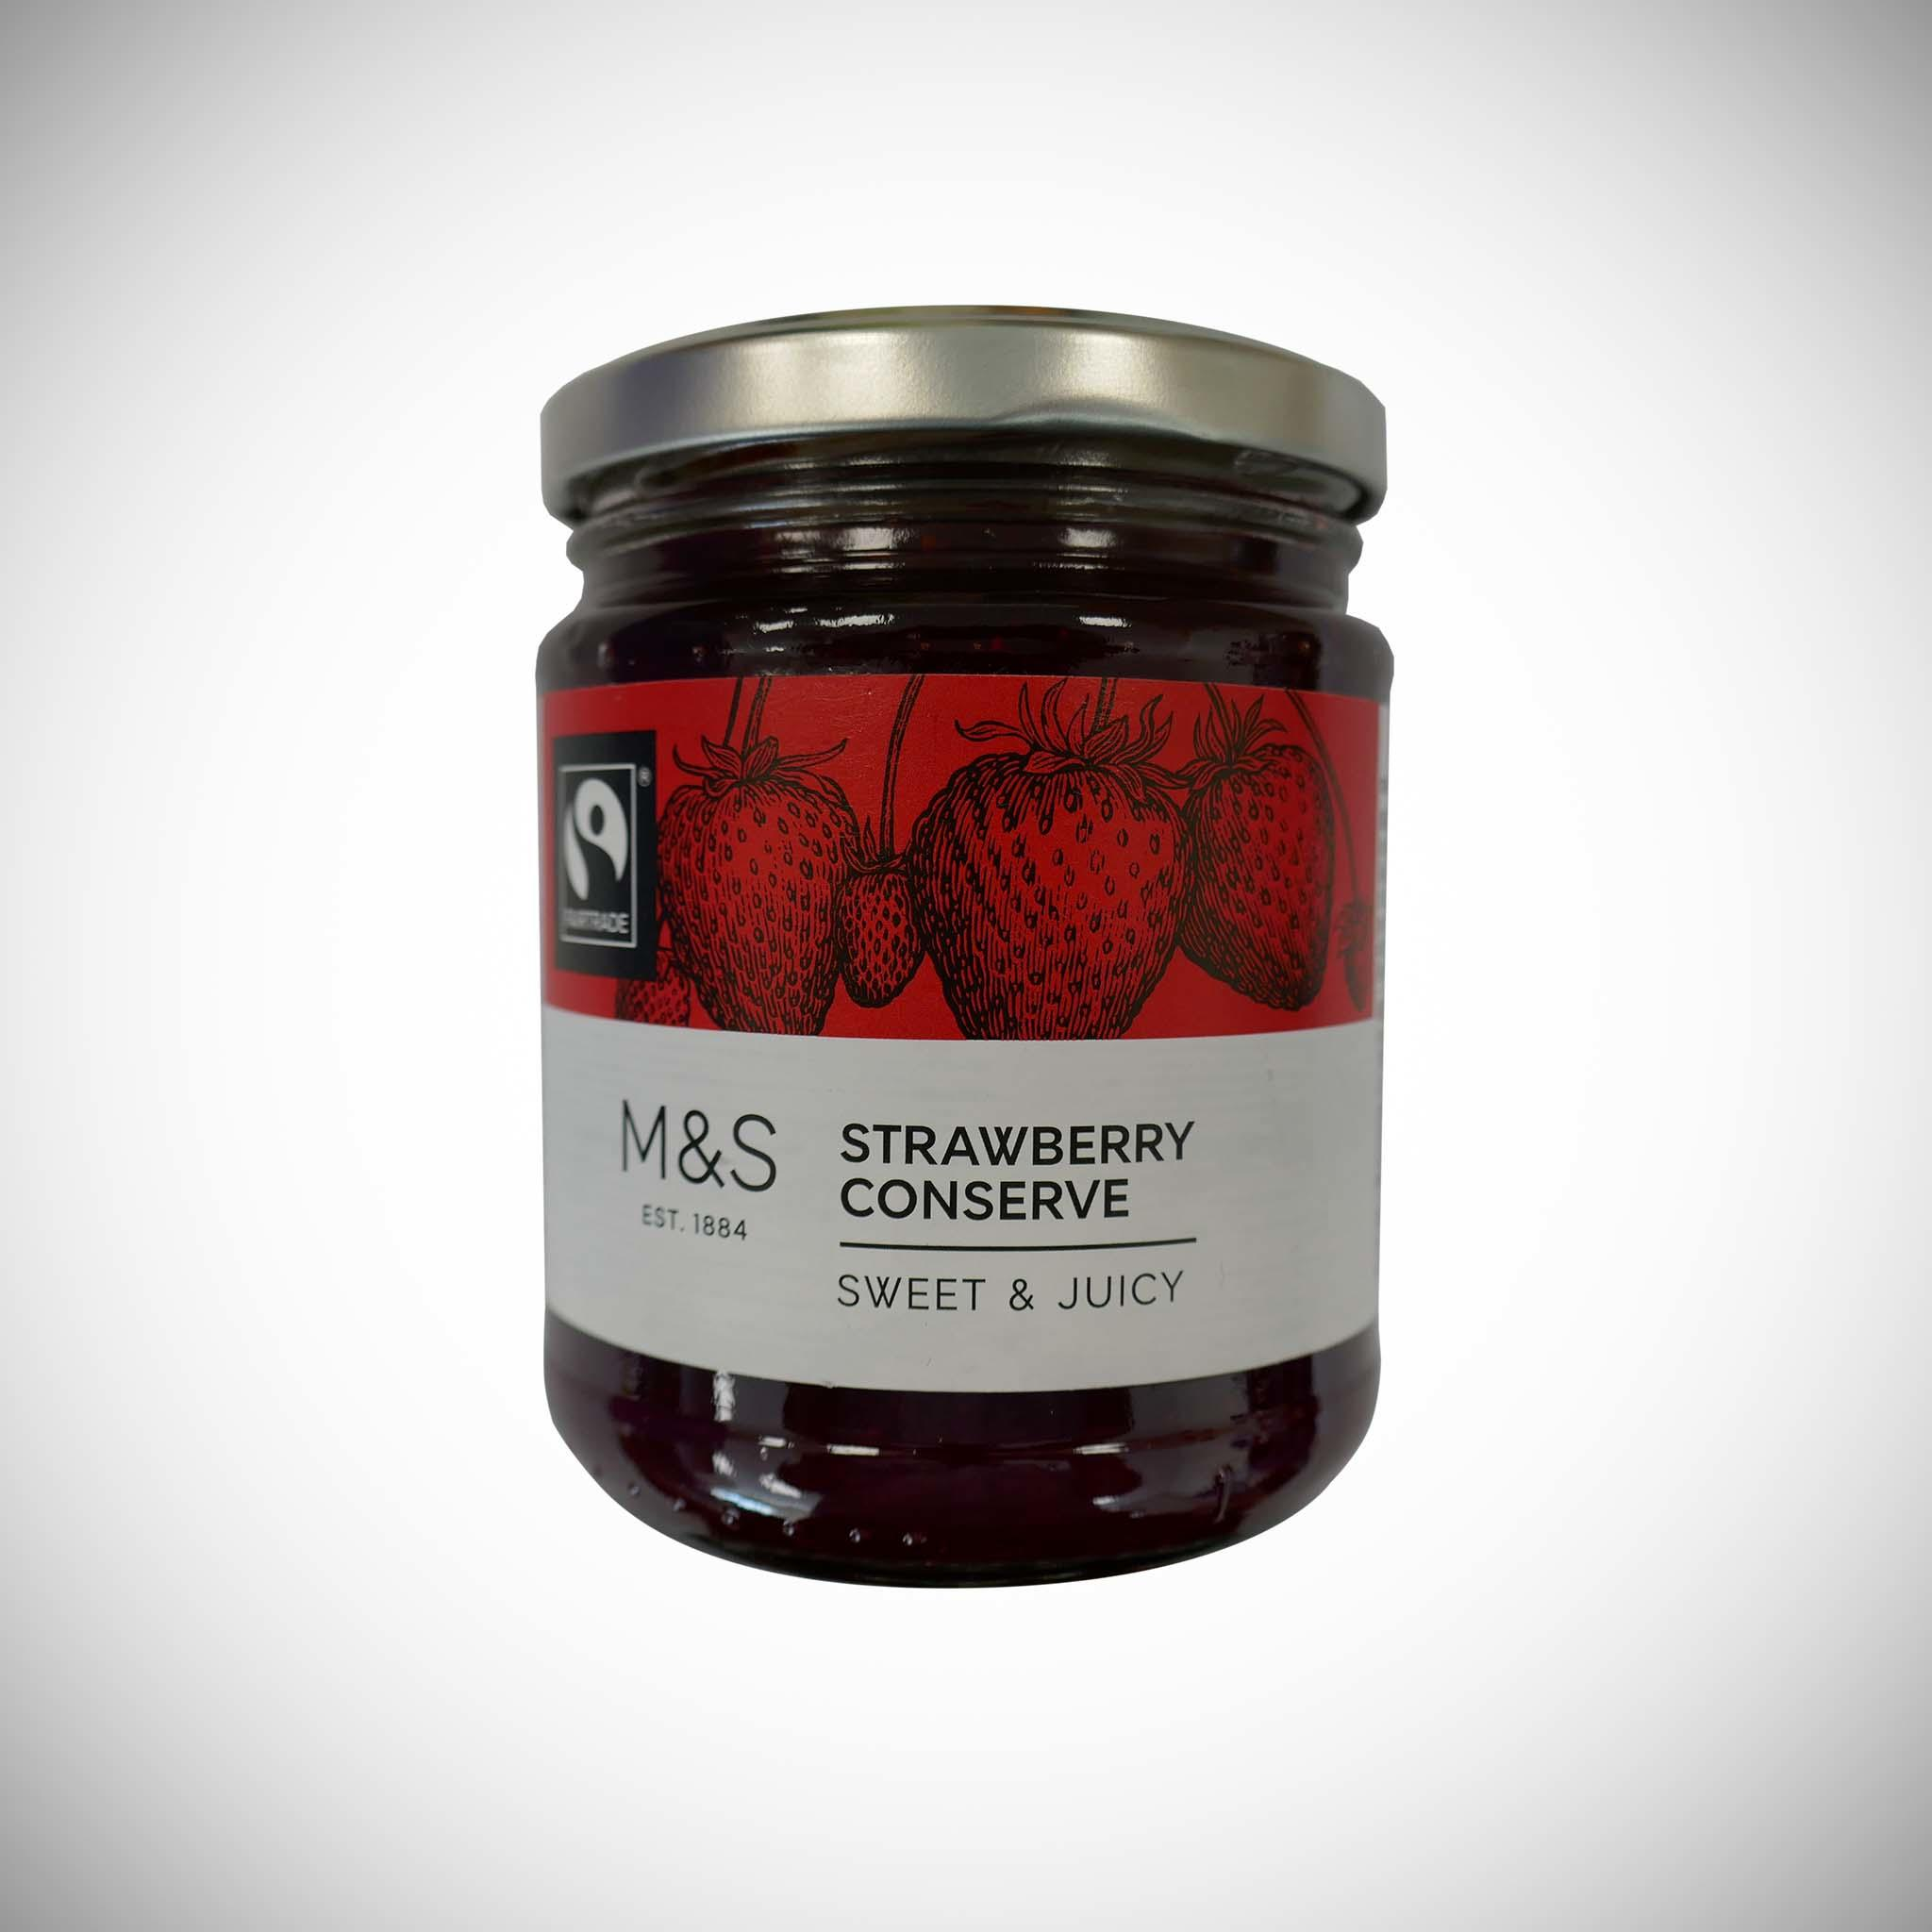 Strawberry Conserve